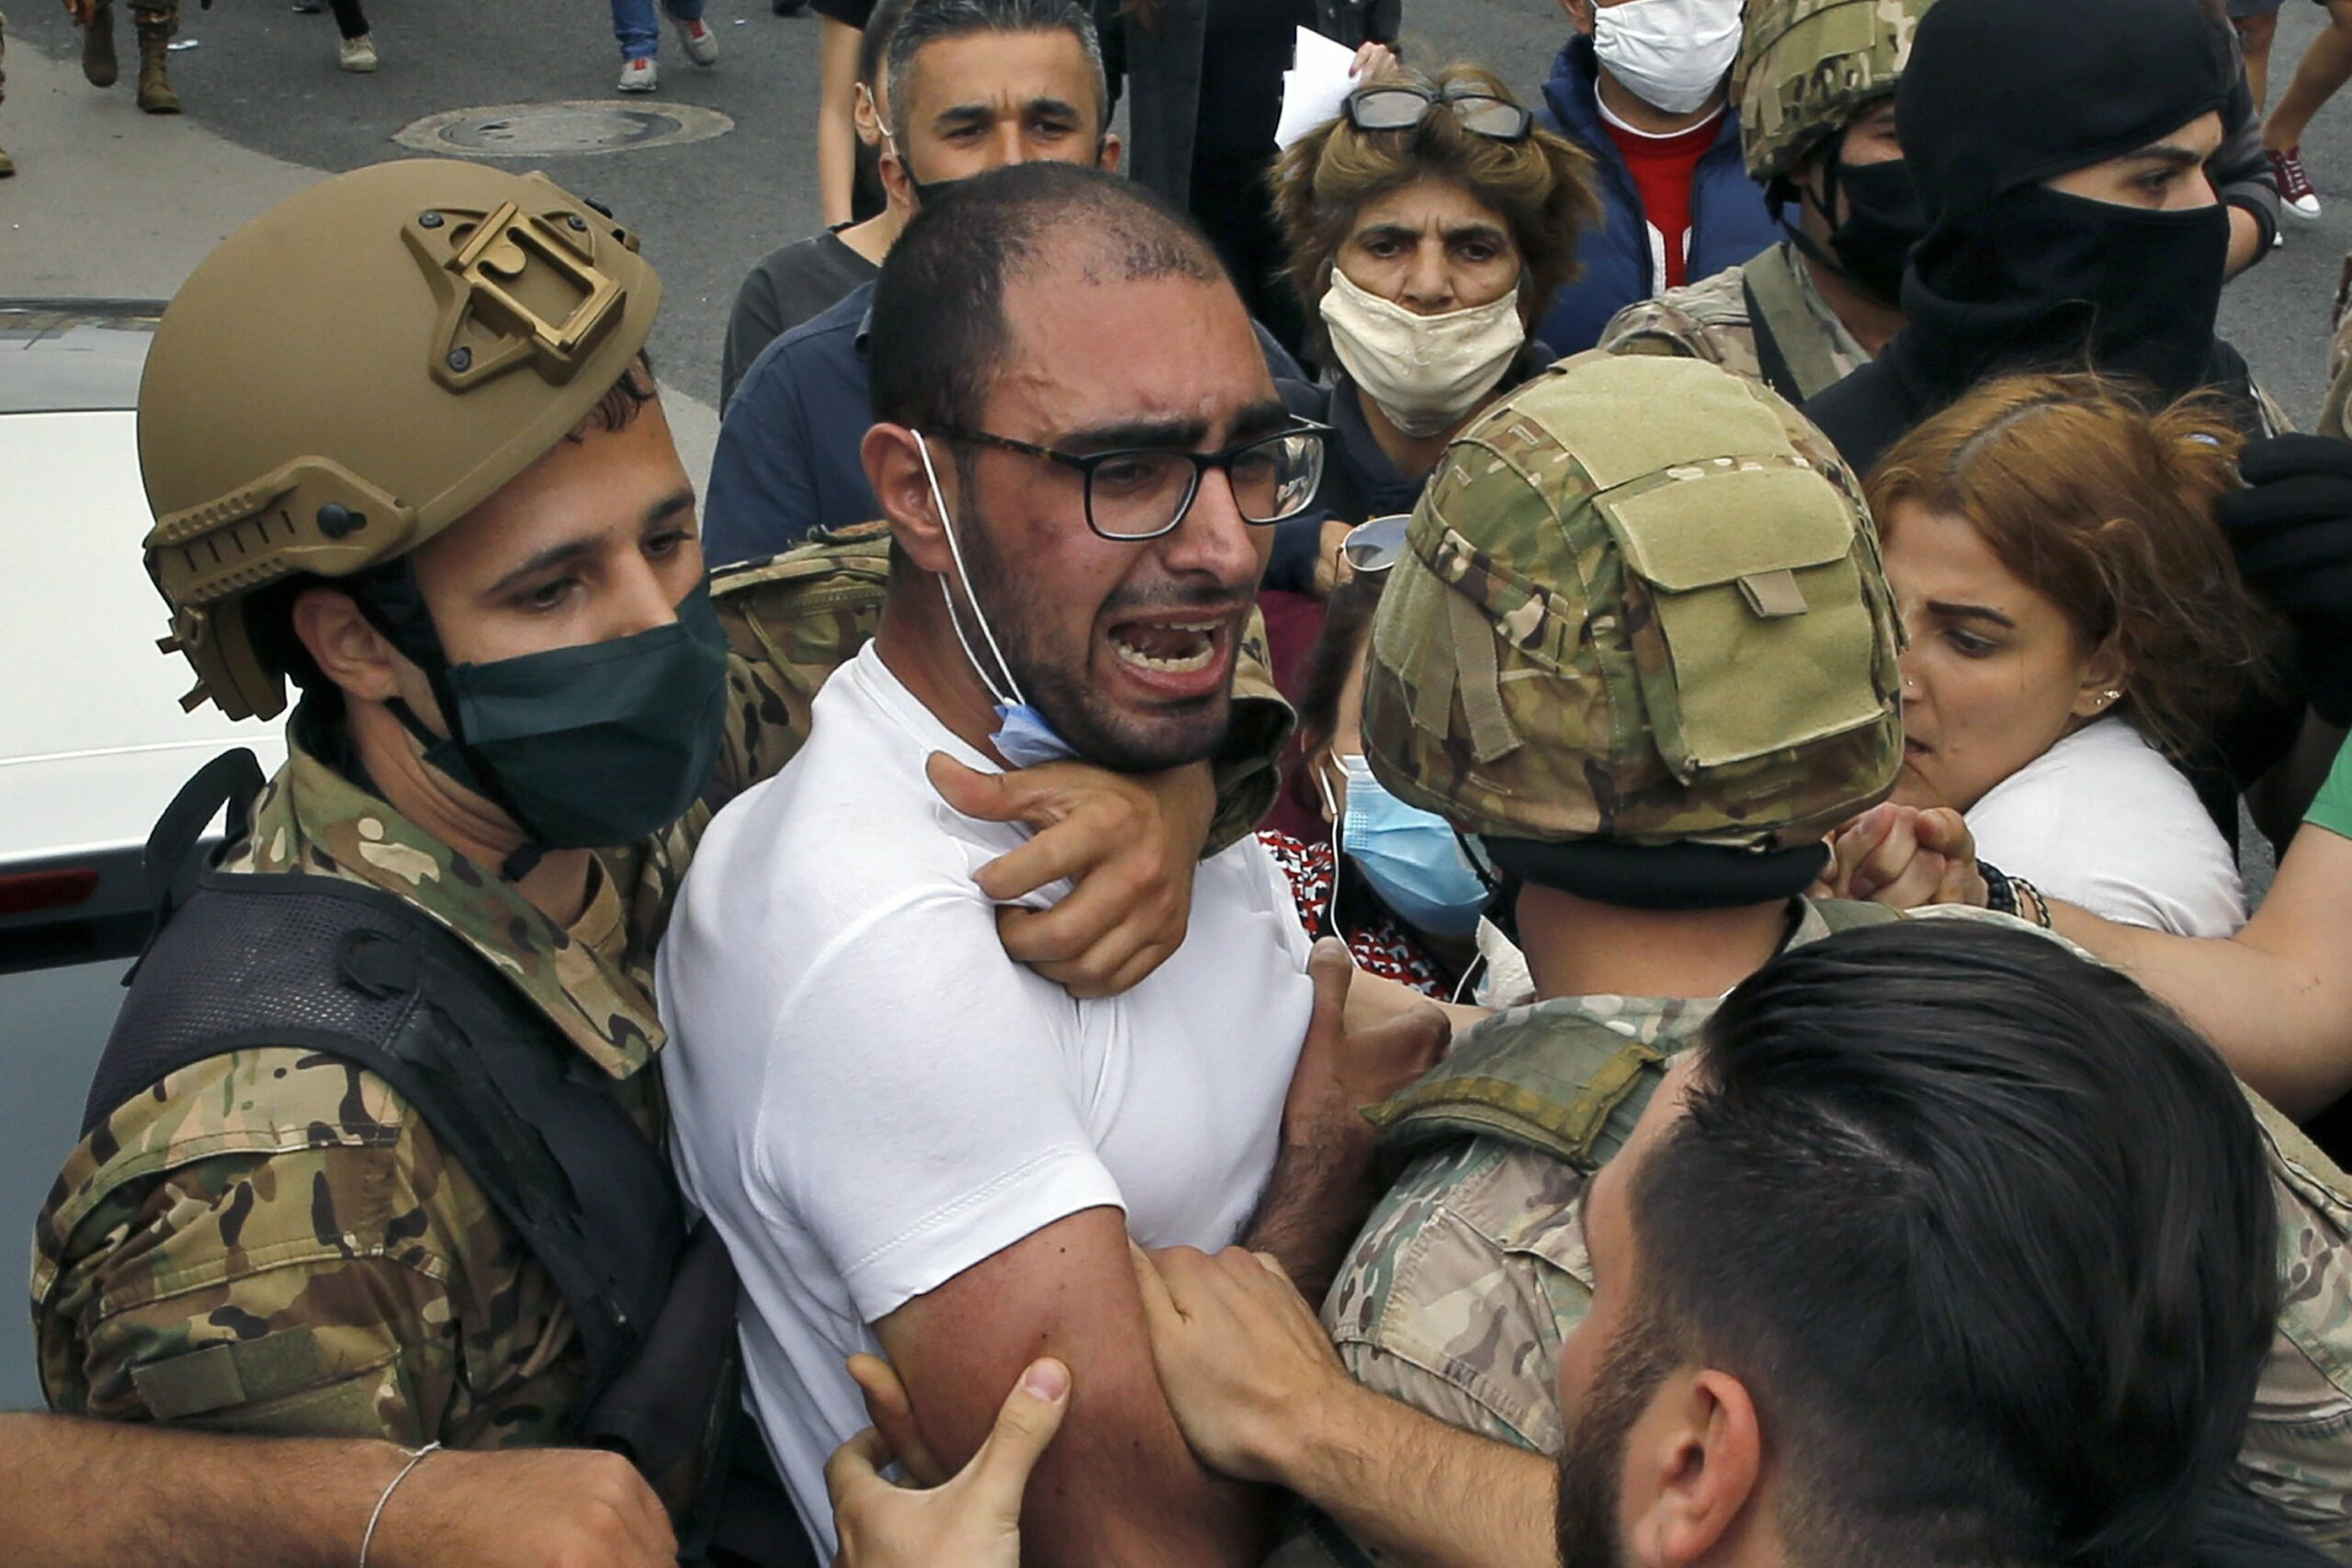 Clashes between the Lebanese army and protesters in Zouk Mosbeh, Lebanon, one of the many locations where demonstrators are demanding their basic rights as Lebanon's economy crashes and the price of basic goods rises. (Photo: AP / Bilal Hussein) Tripoli article